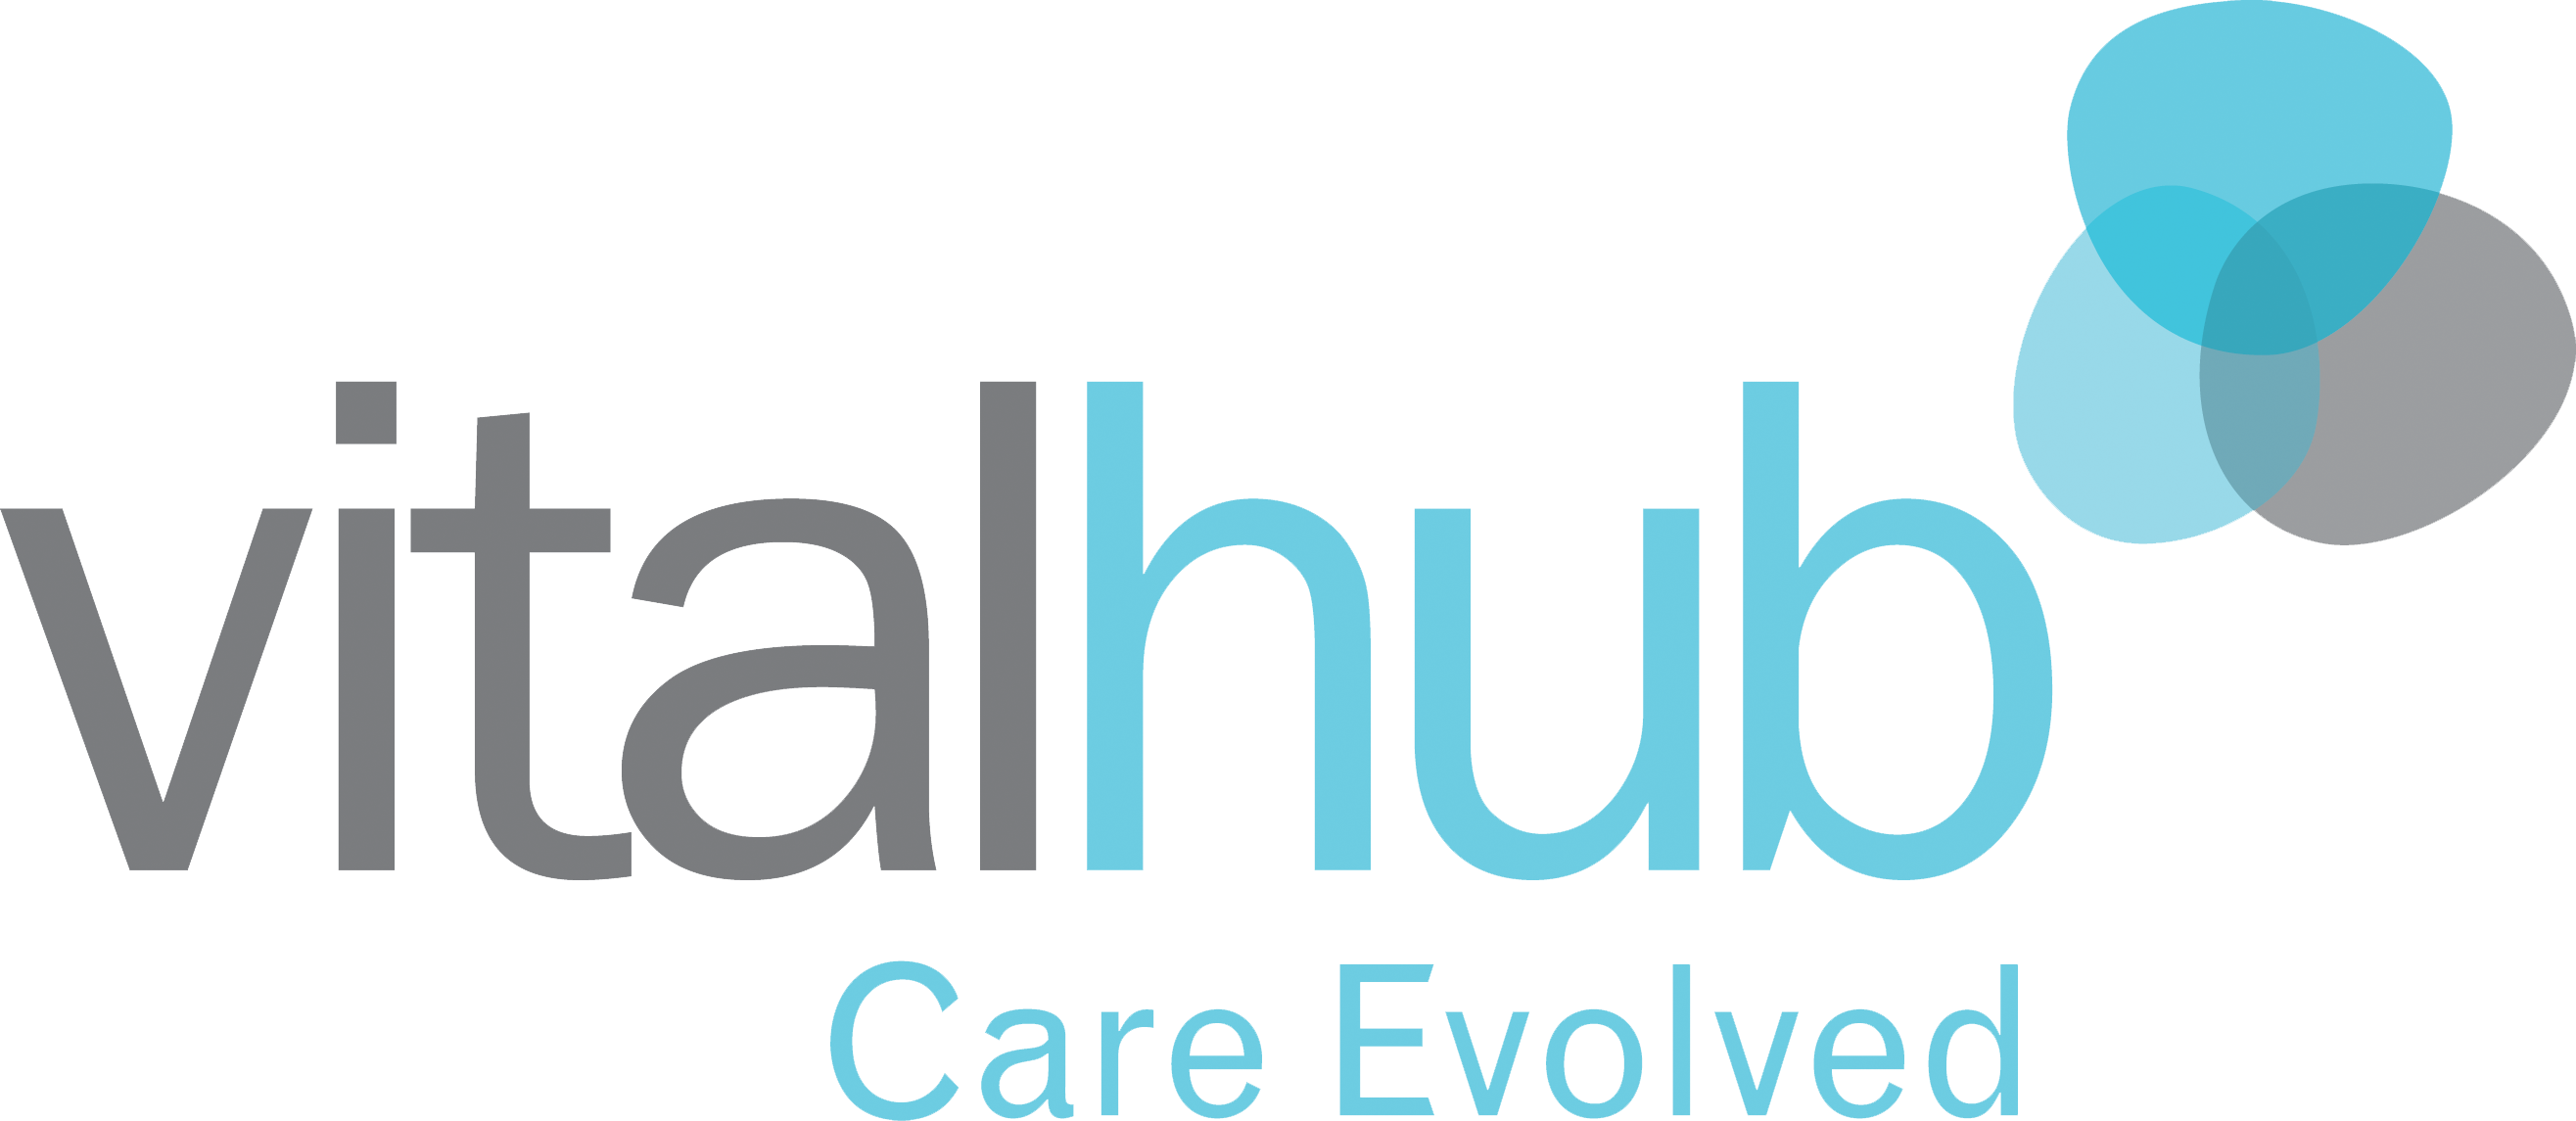 VitalHub Corp. Announces Agreement to Acquire UK Company Transforming Systems Ltd.